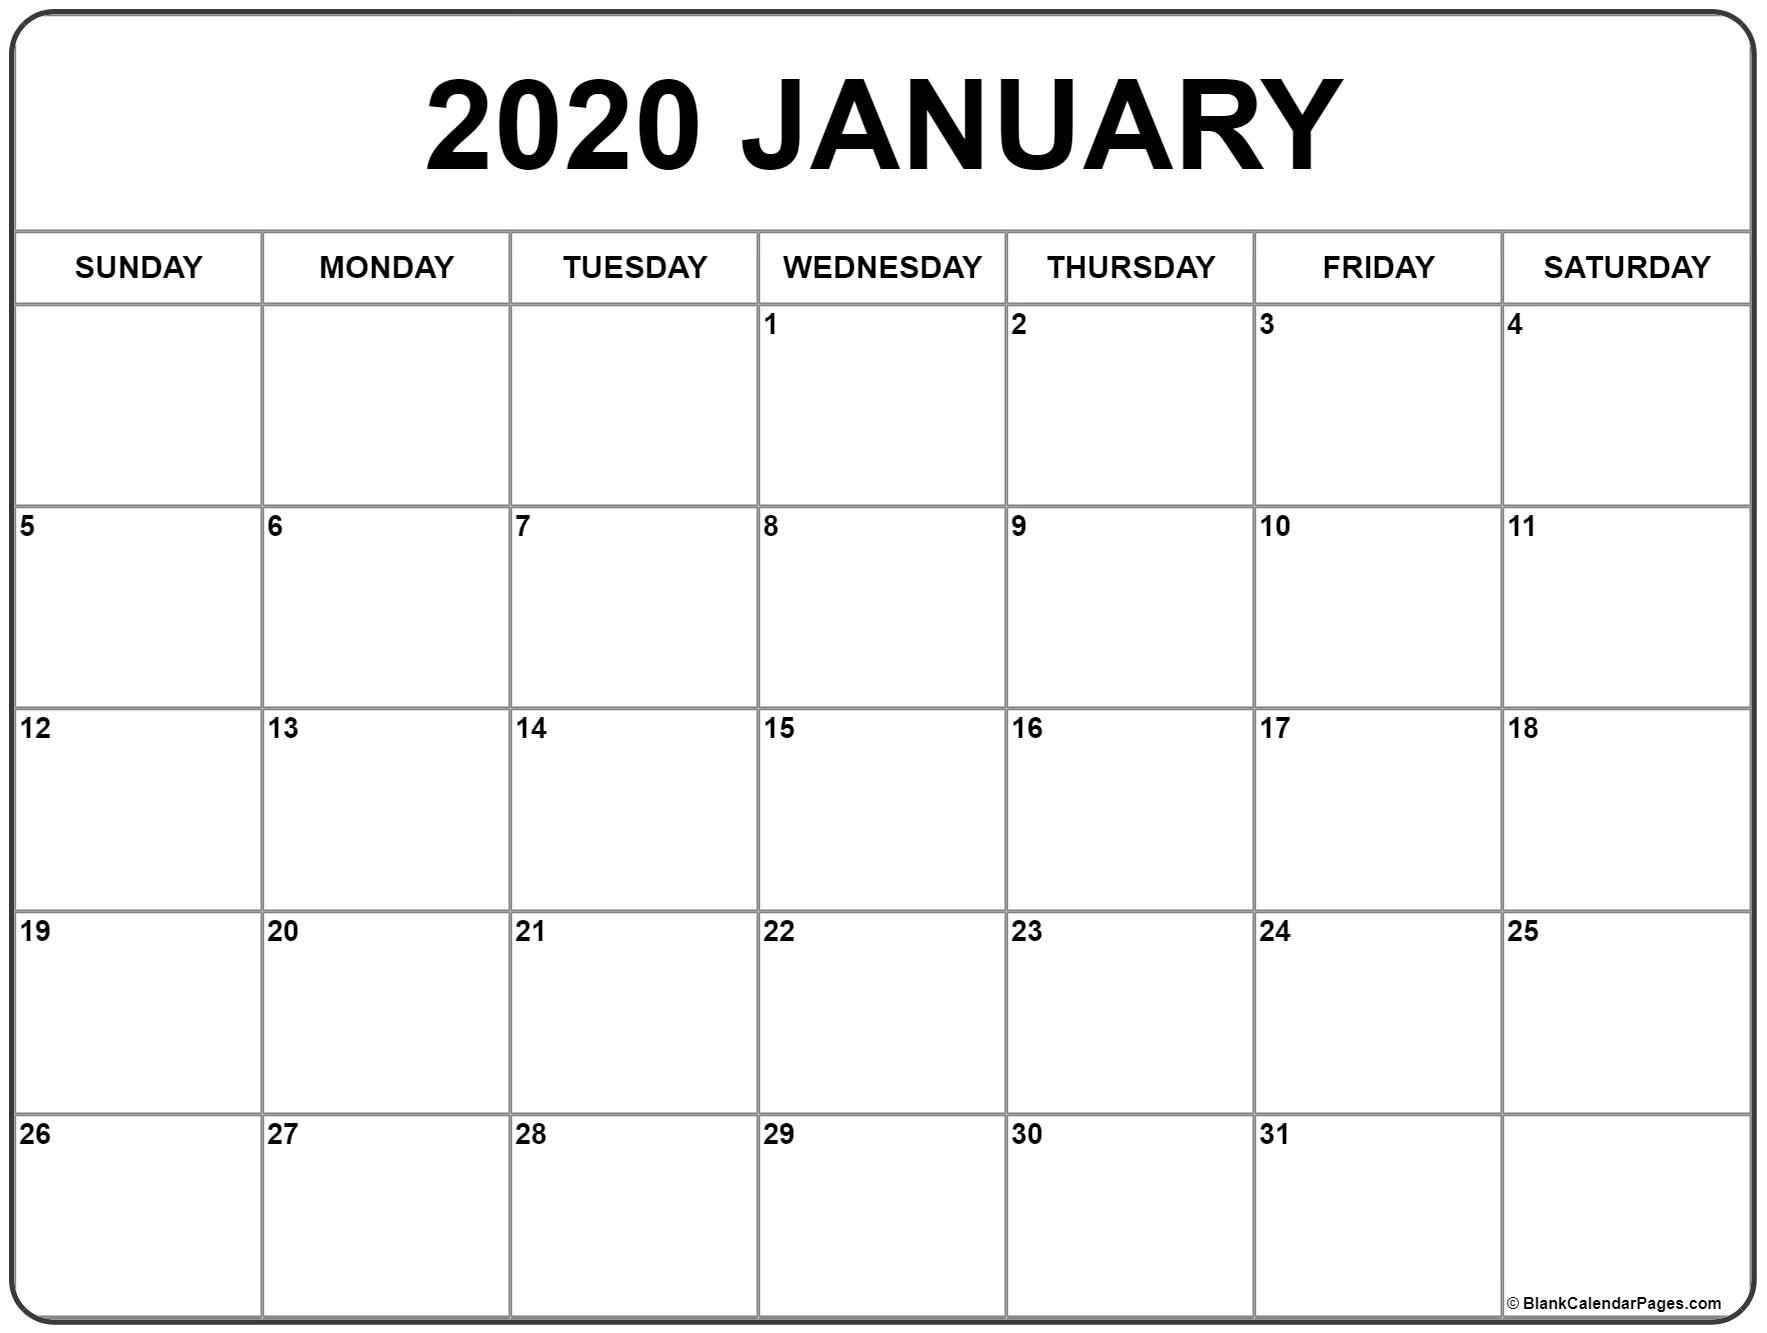 January 2020 Calendar | Free Printable Monthly Calendars-January 2020 Calendar Portrait